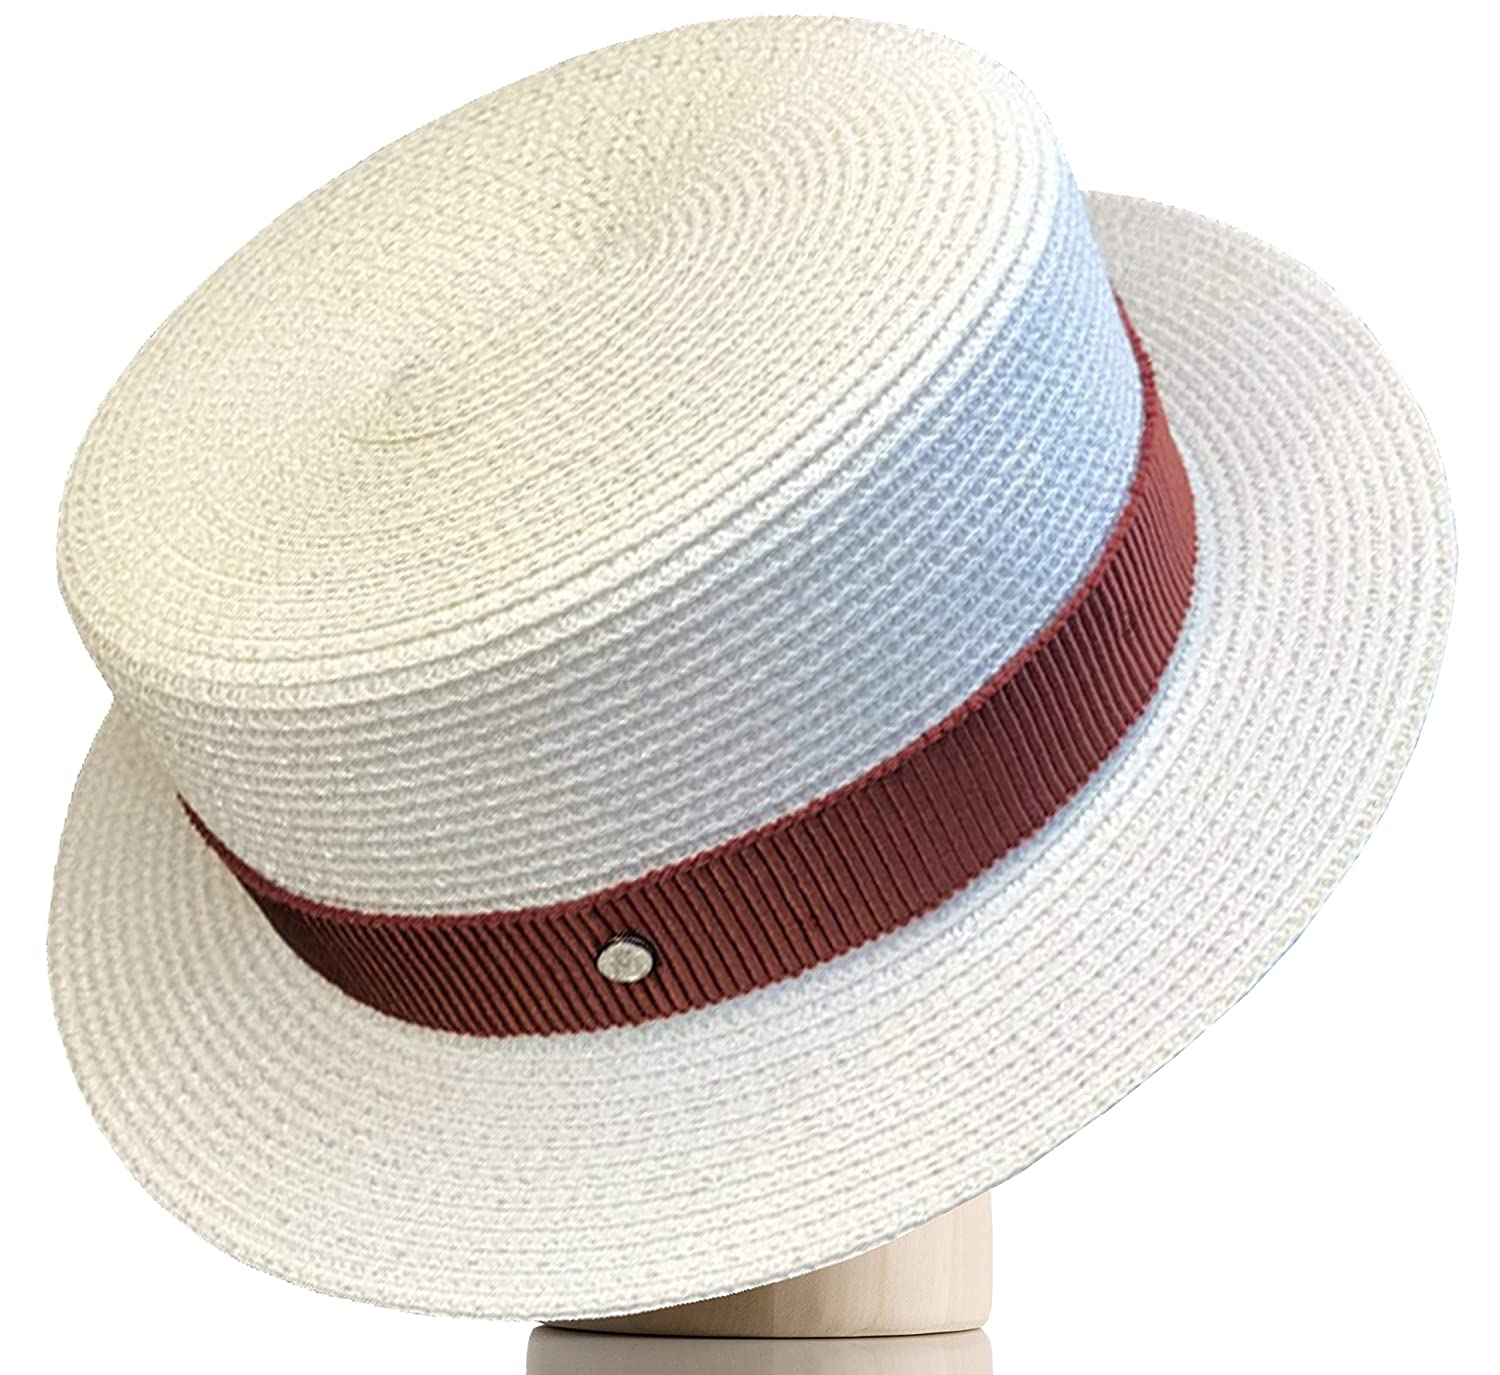 Edwardian Hats, Titanic Hats, Tea Party Hats Melniko City Womens Straw Boater Hat Roaring 20s Retro Sunhat $22.98 AT vintagedancer.com